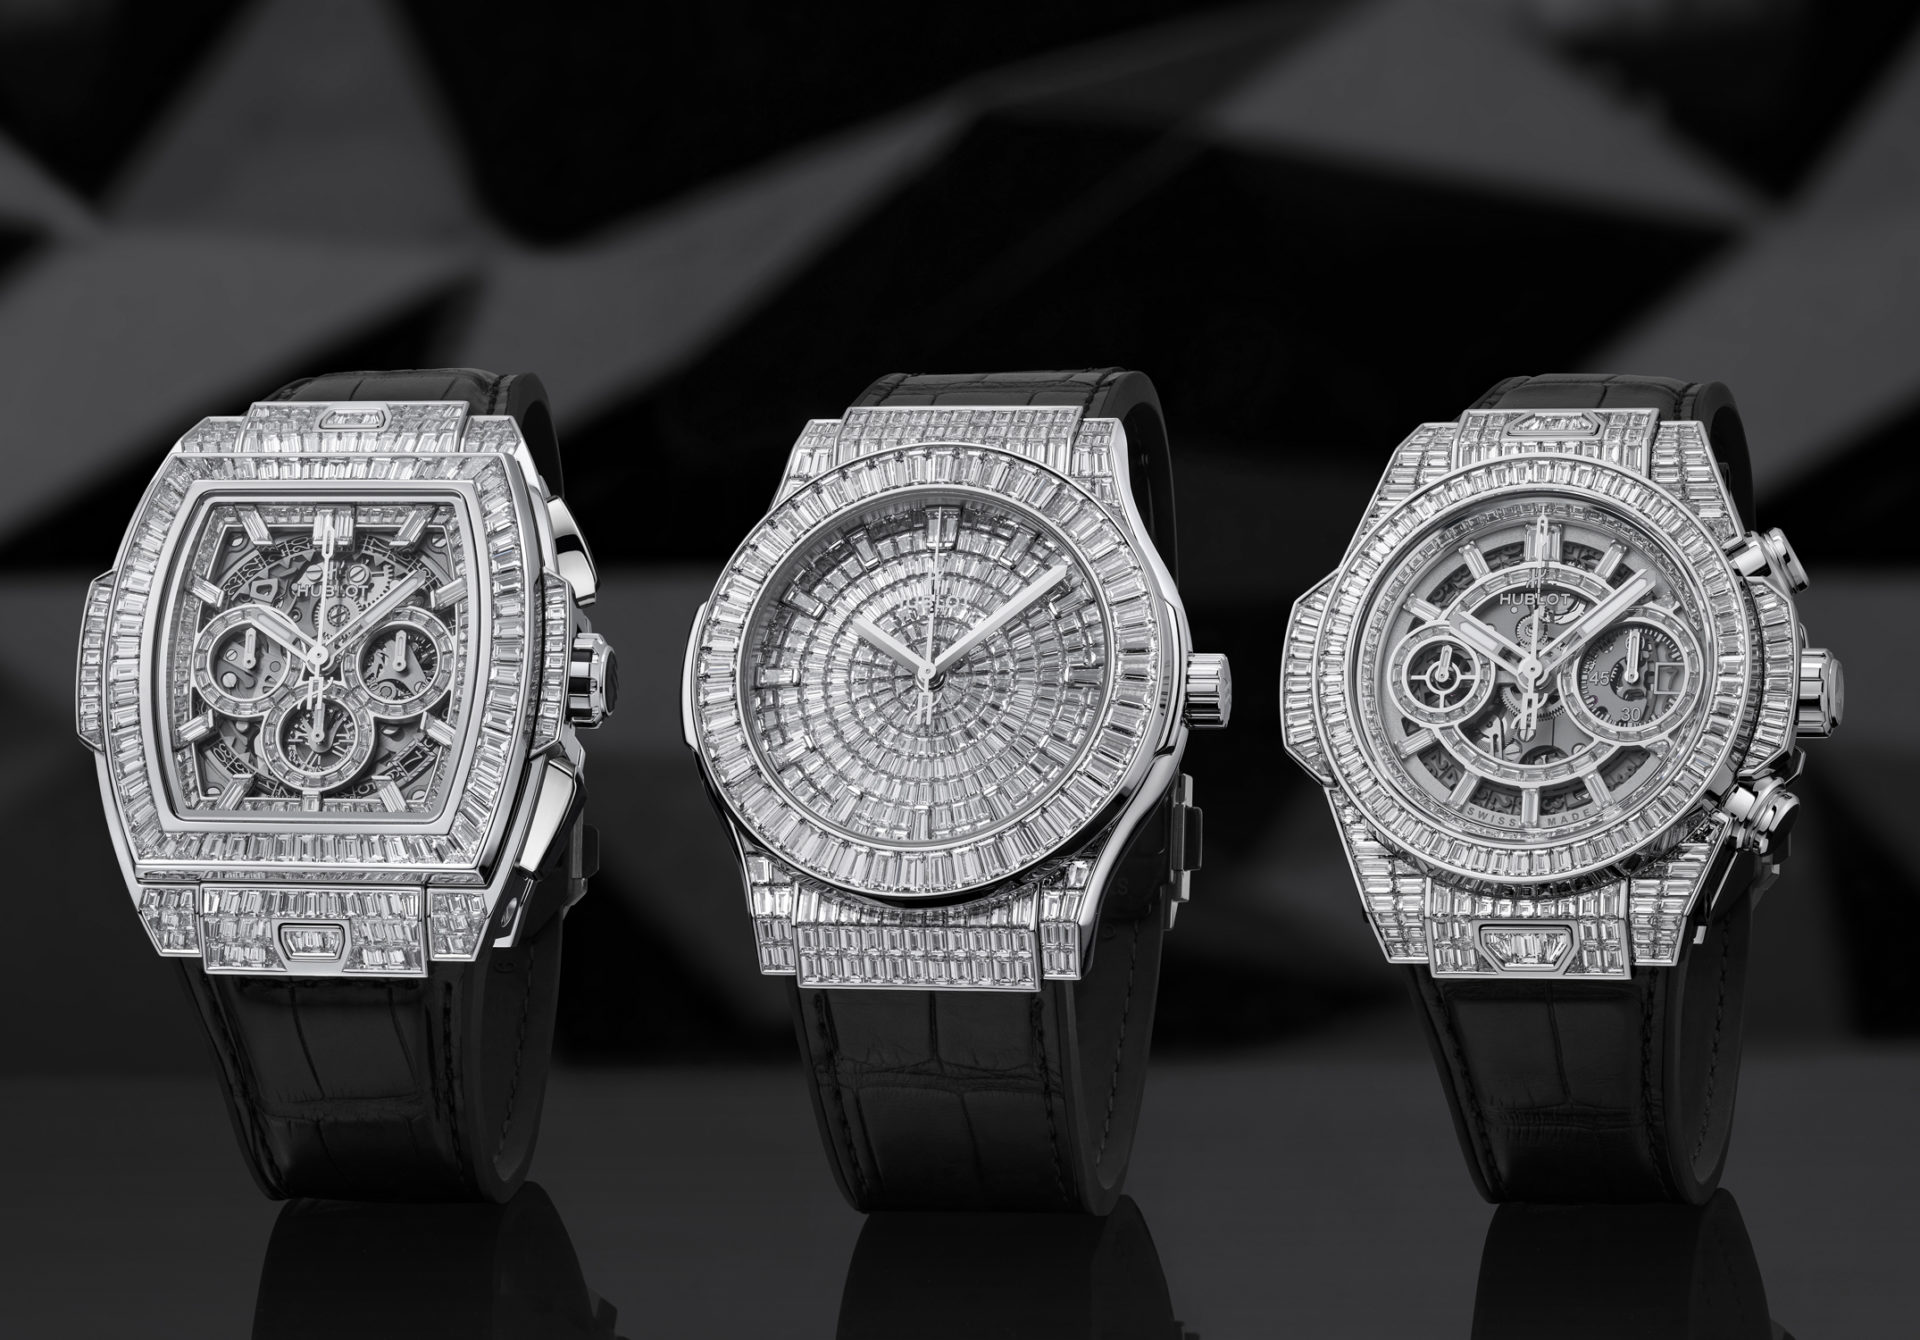 Hublot High Jewelry collection